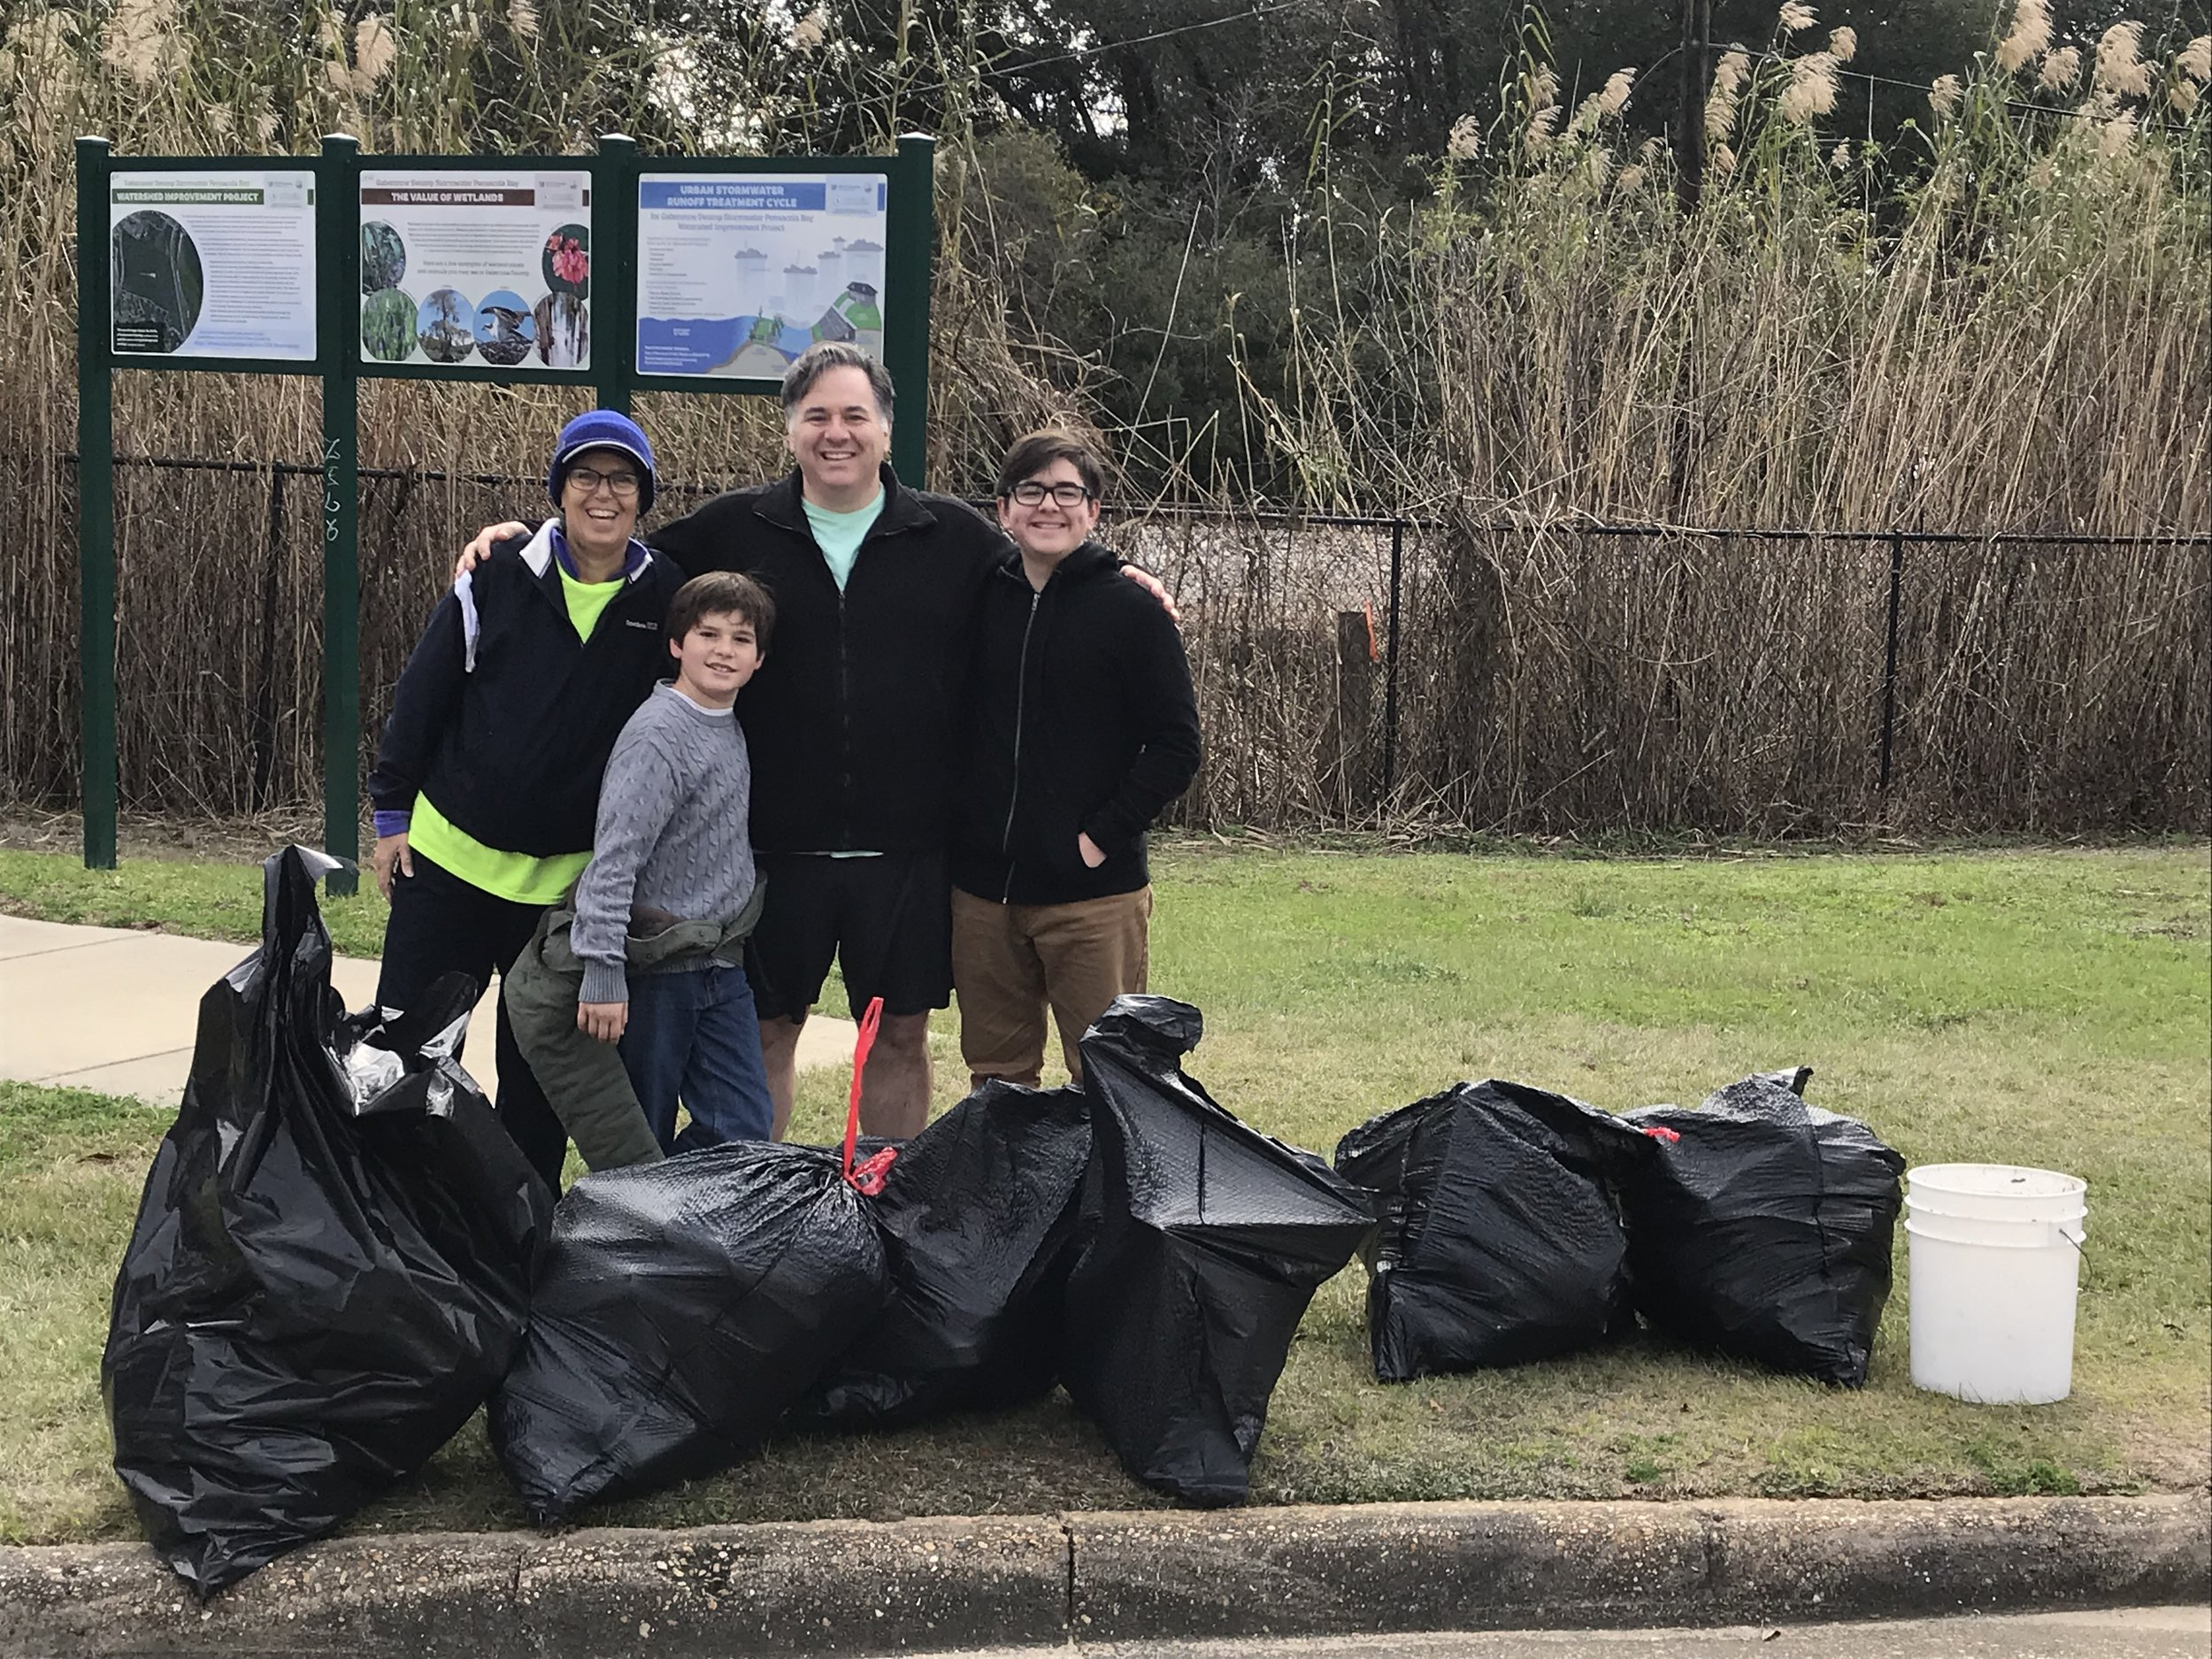 - Chimney Park 18 volunteers picked up 323 lbs of trash - a lot of adult beverage cans and water bottles. Meanwhile, at Bay Bluffs 305 lbs by 27 volunteers. Thanks to 2 people at NLO with 20 lbs